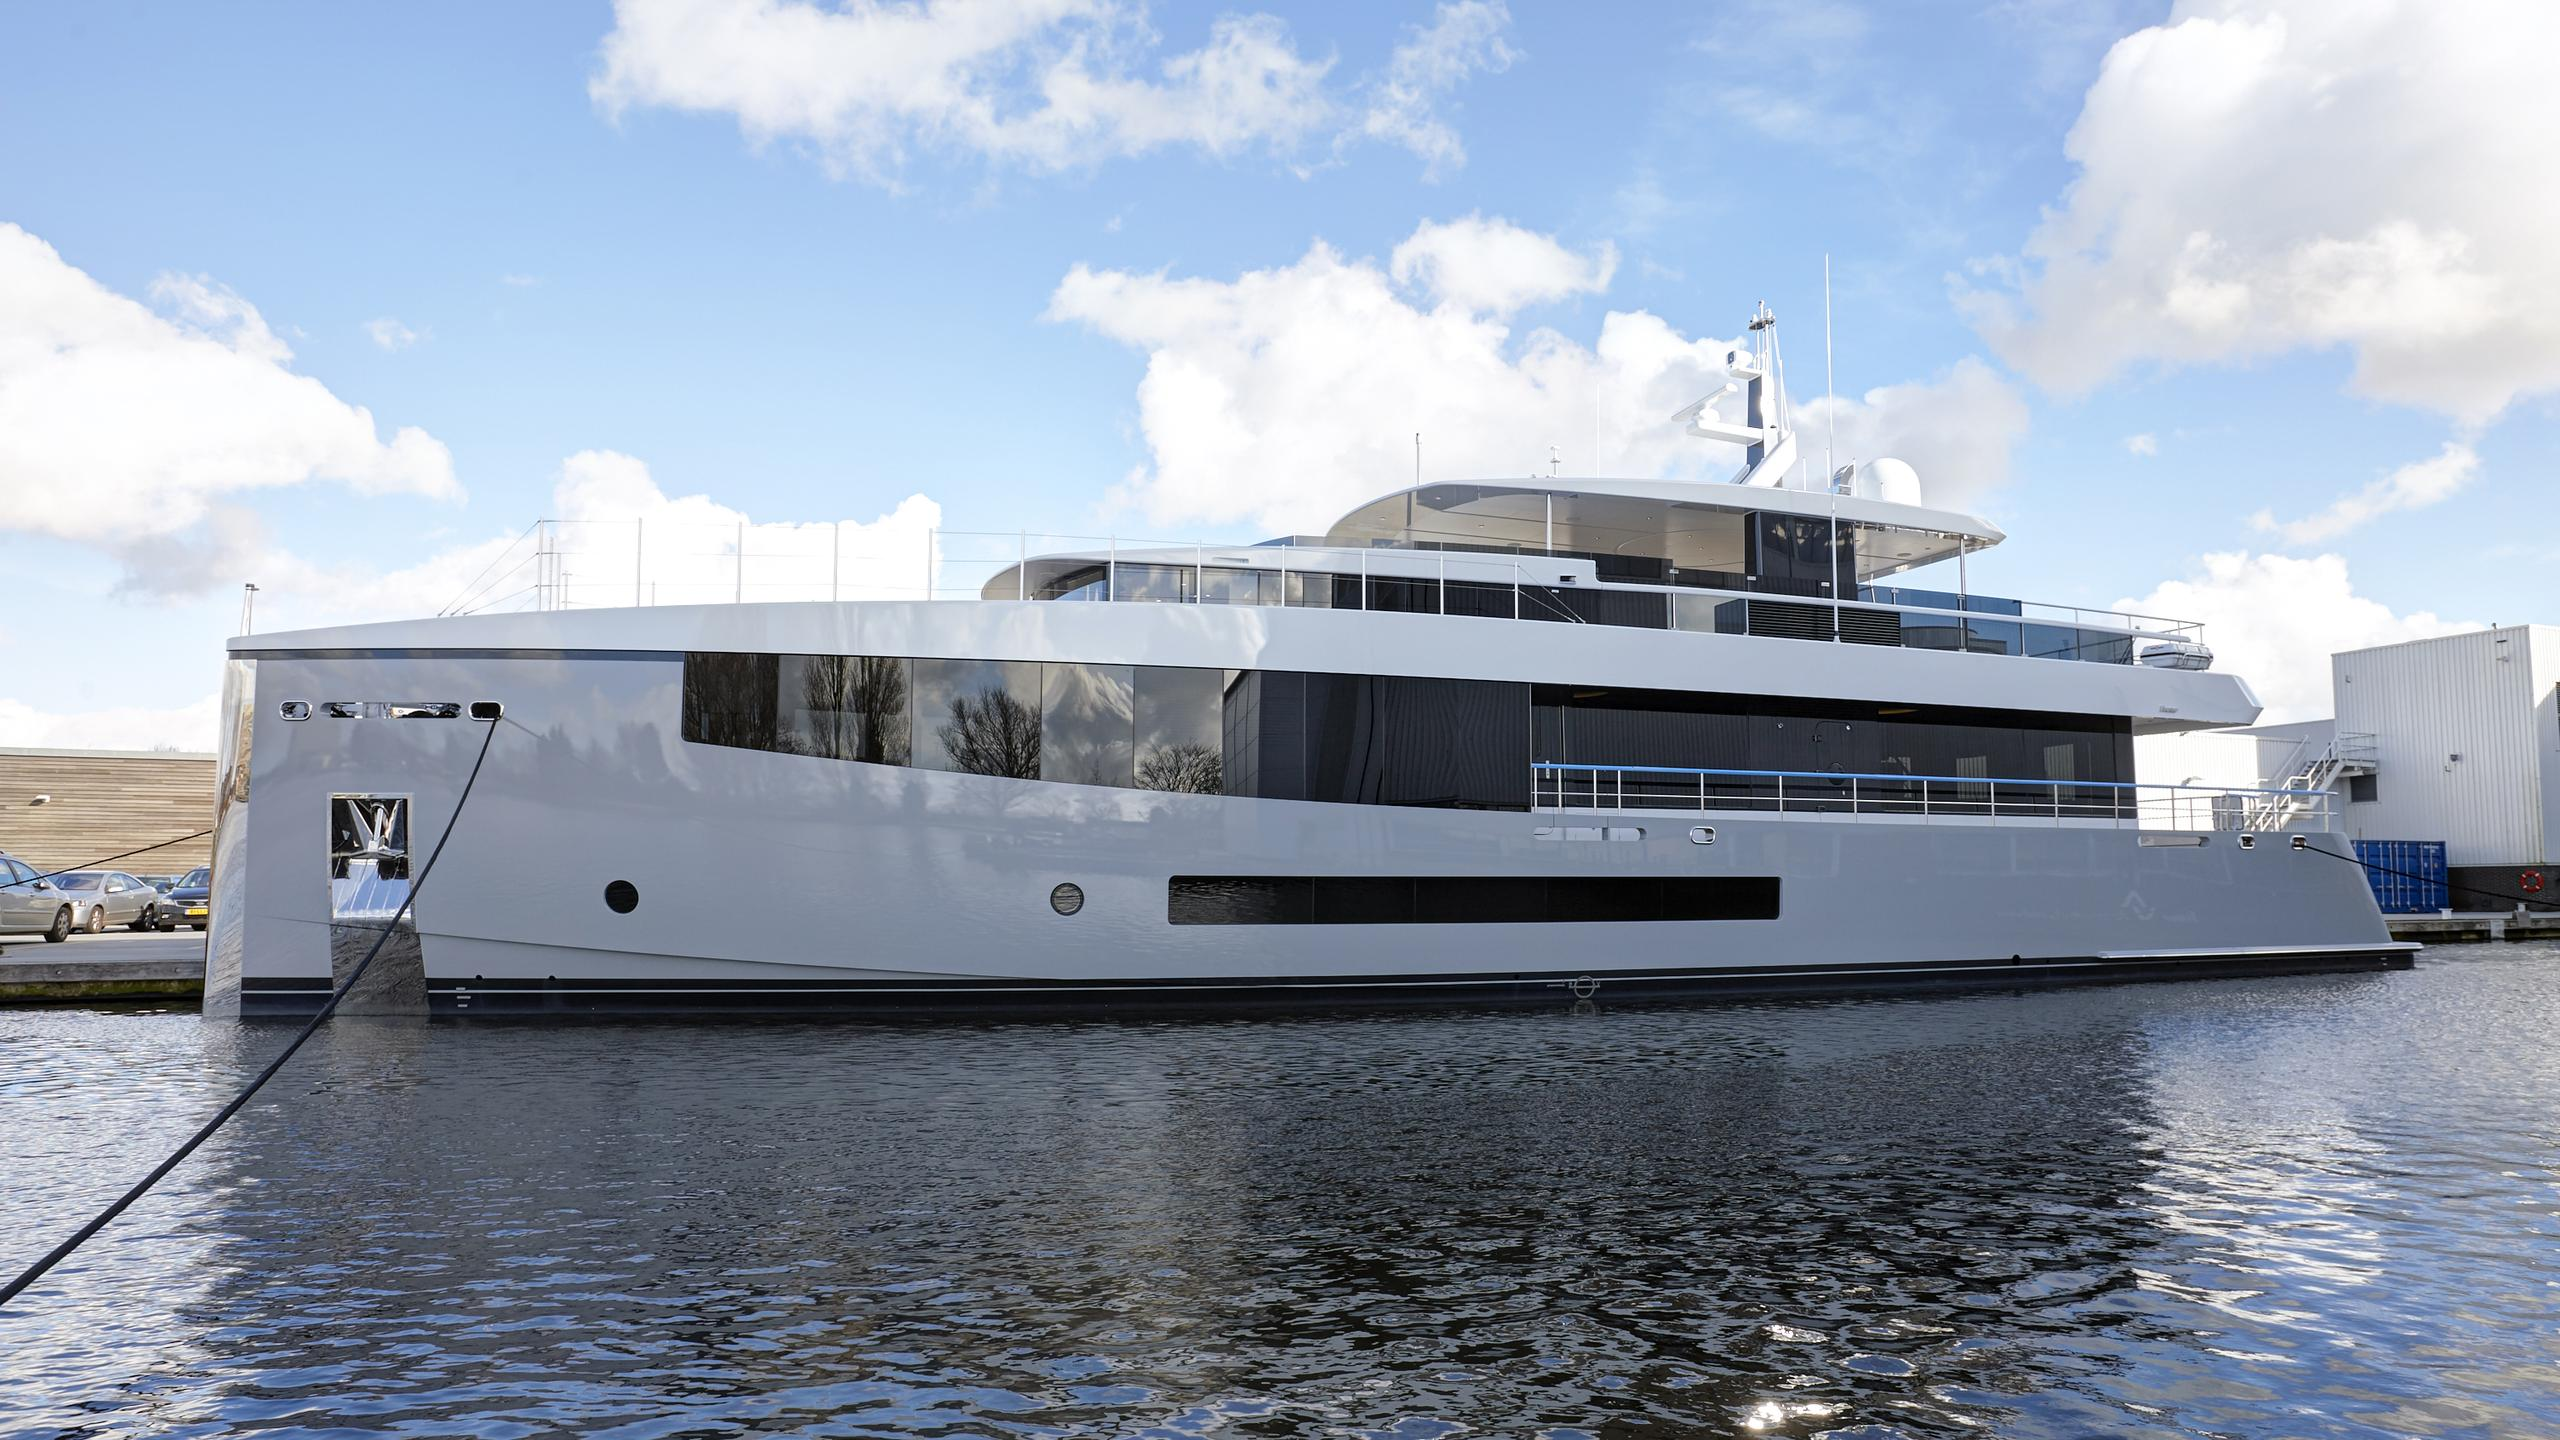 feadship-hull-692-2016-34m-de-voogt-bannenberg-rowell-yacht-exterior